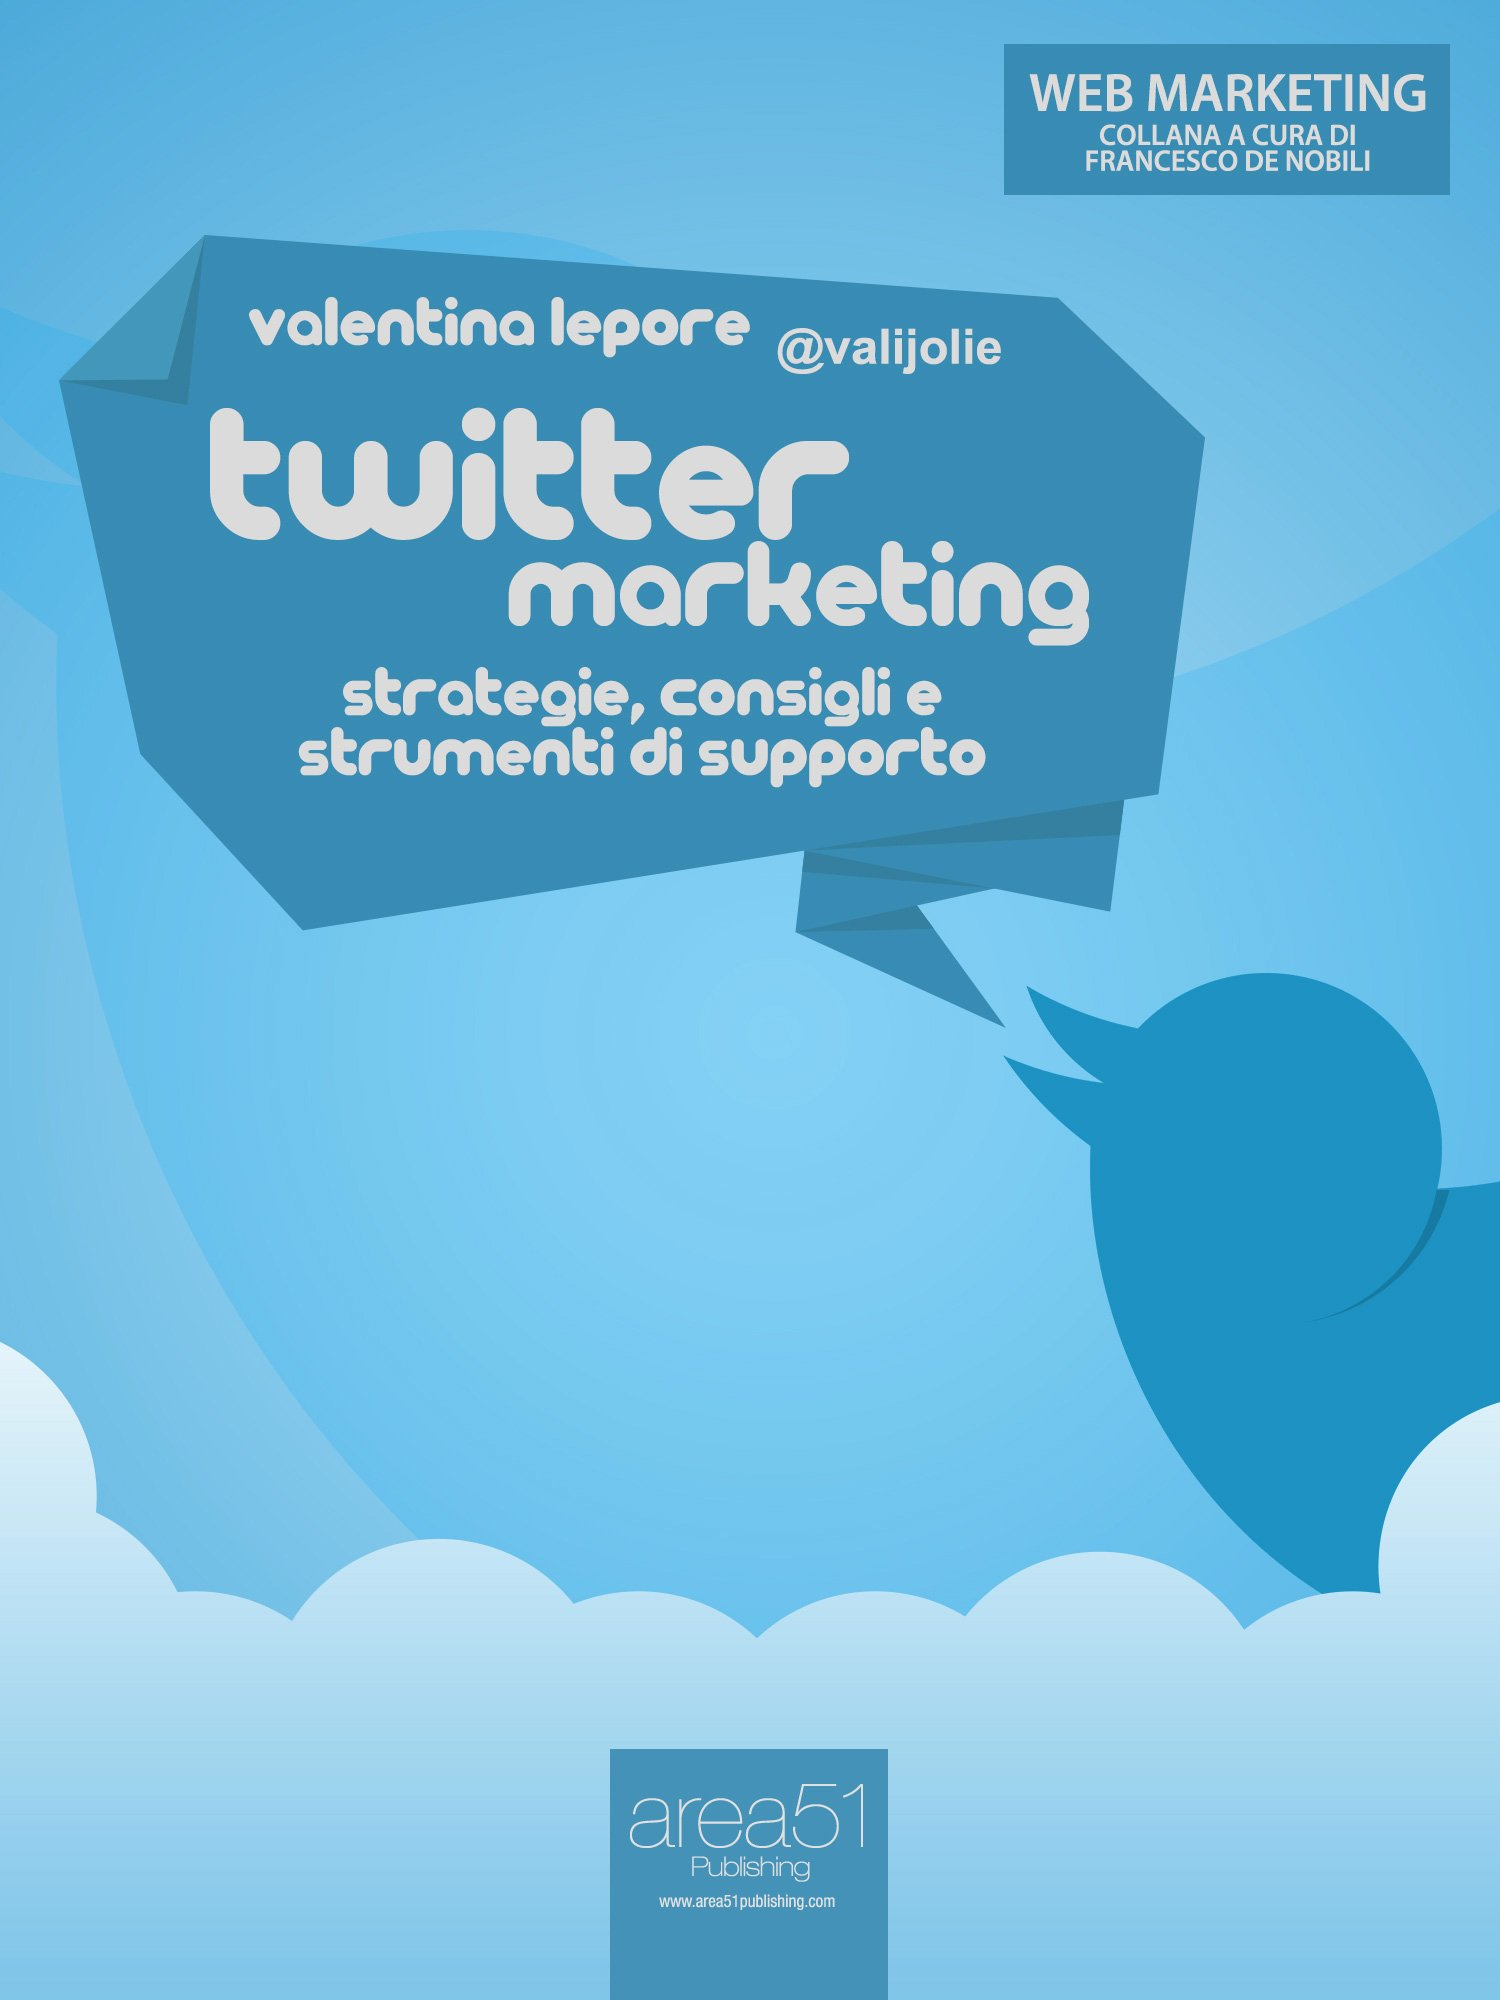 Image OfTwitter Marketing. Strategie, Consigli E Strumenti Di Supporto (Web Marketing)